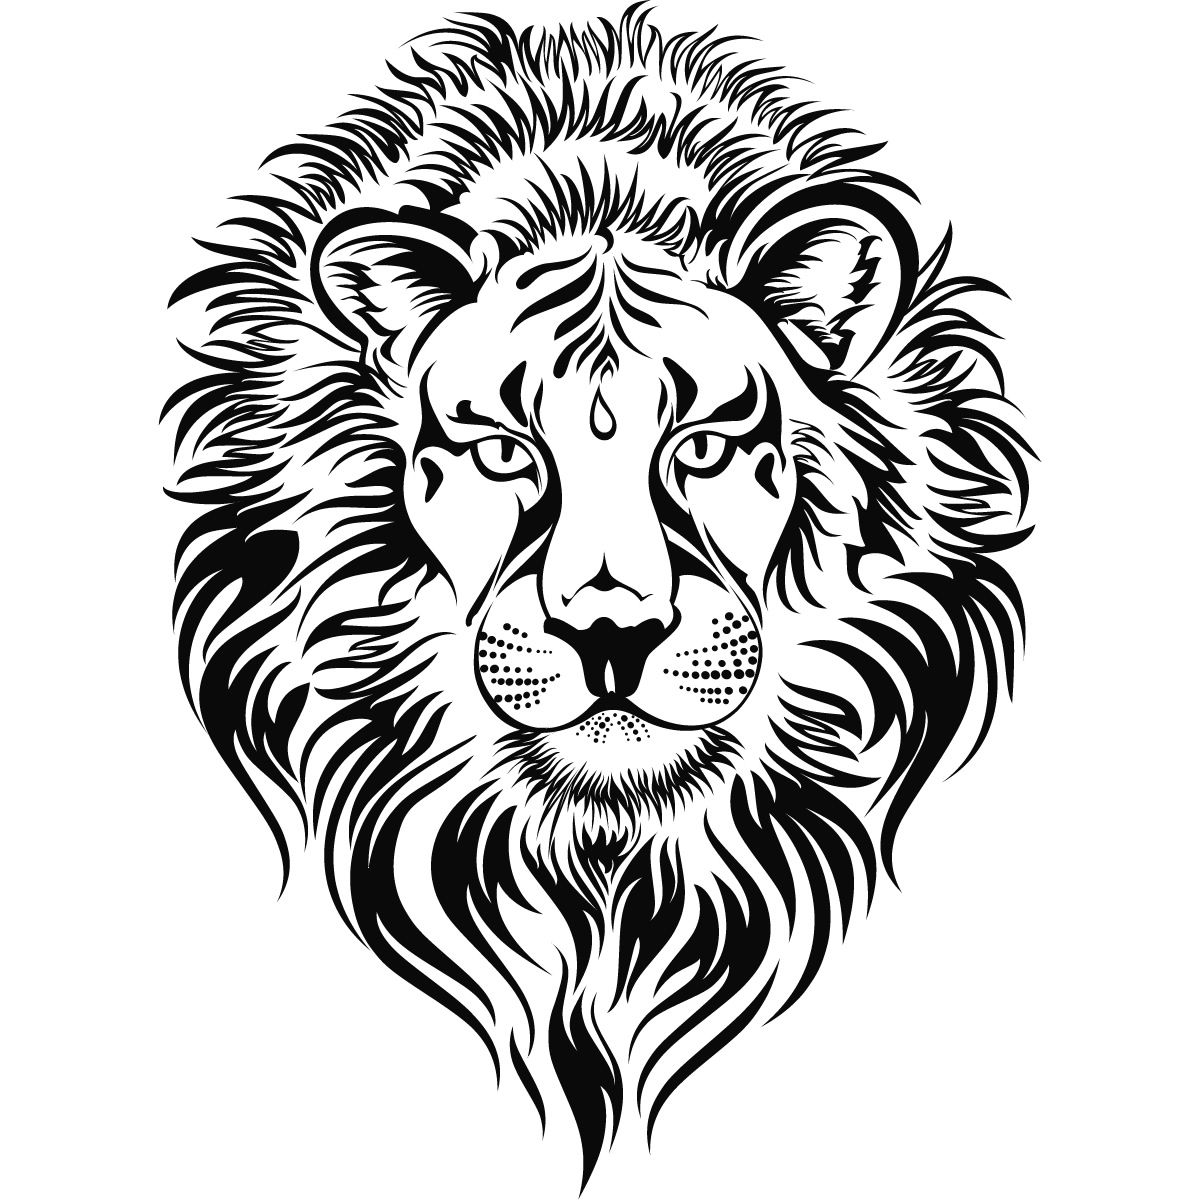 Roaring Lion Clip Art Black And White Roaring Lion Head Clip Art Clipart Panda Free Clipart